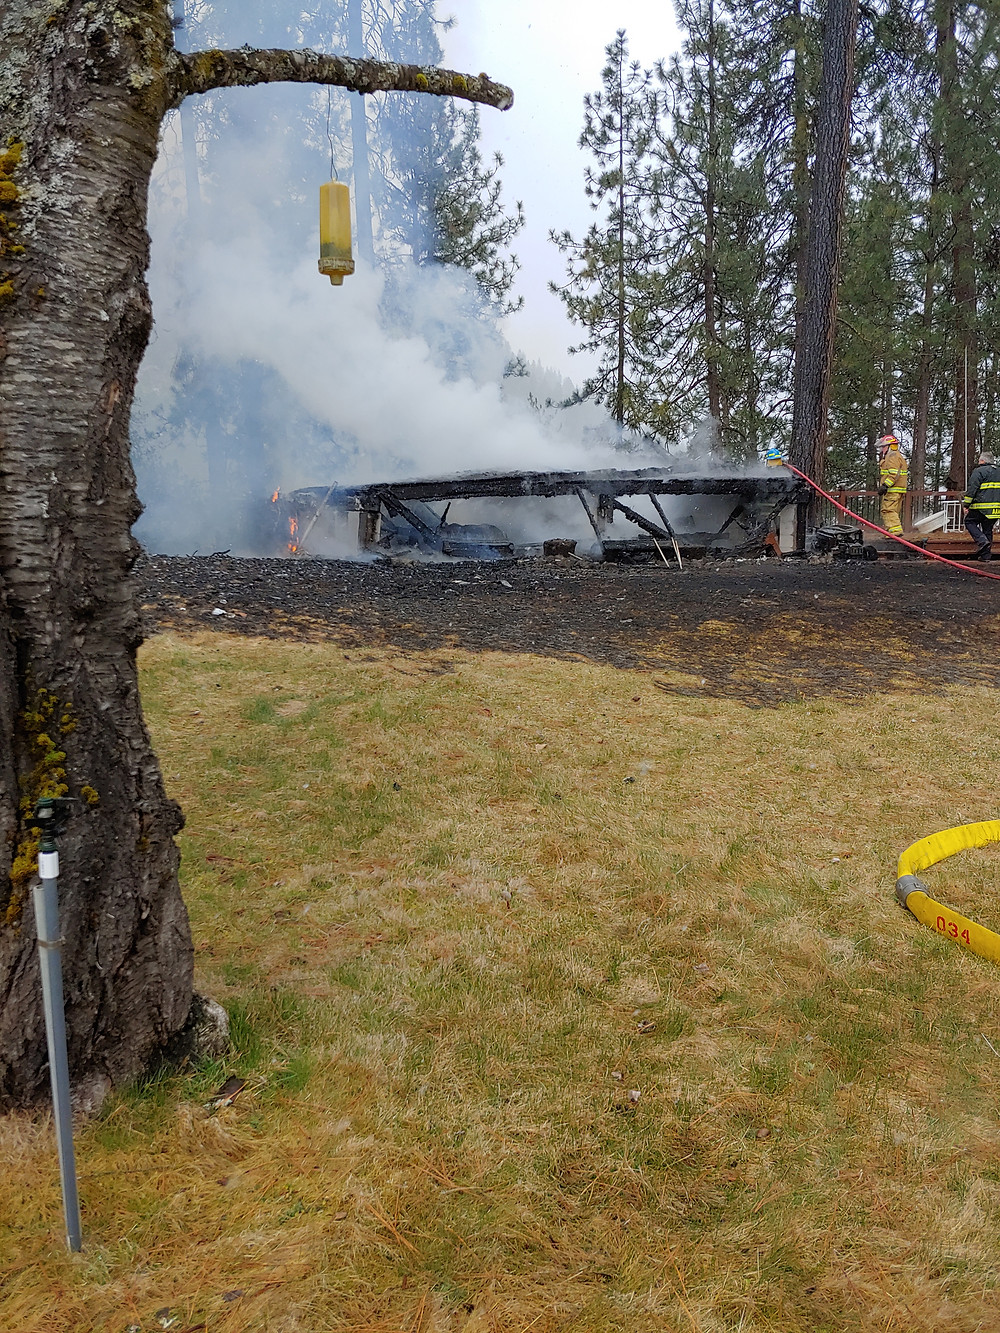 Shoshone County Fire District #2 responds to structure fire near Medimont